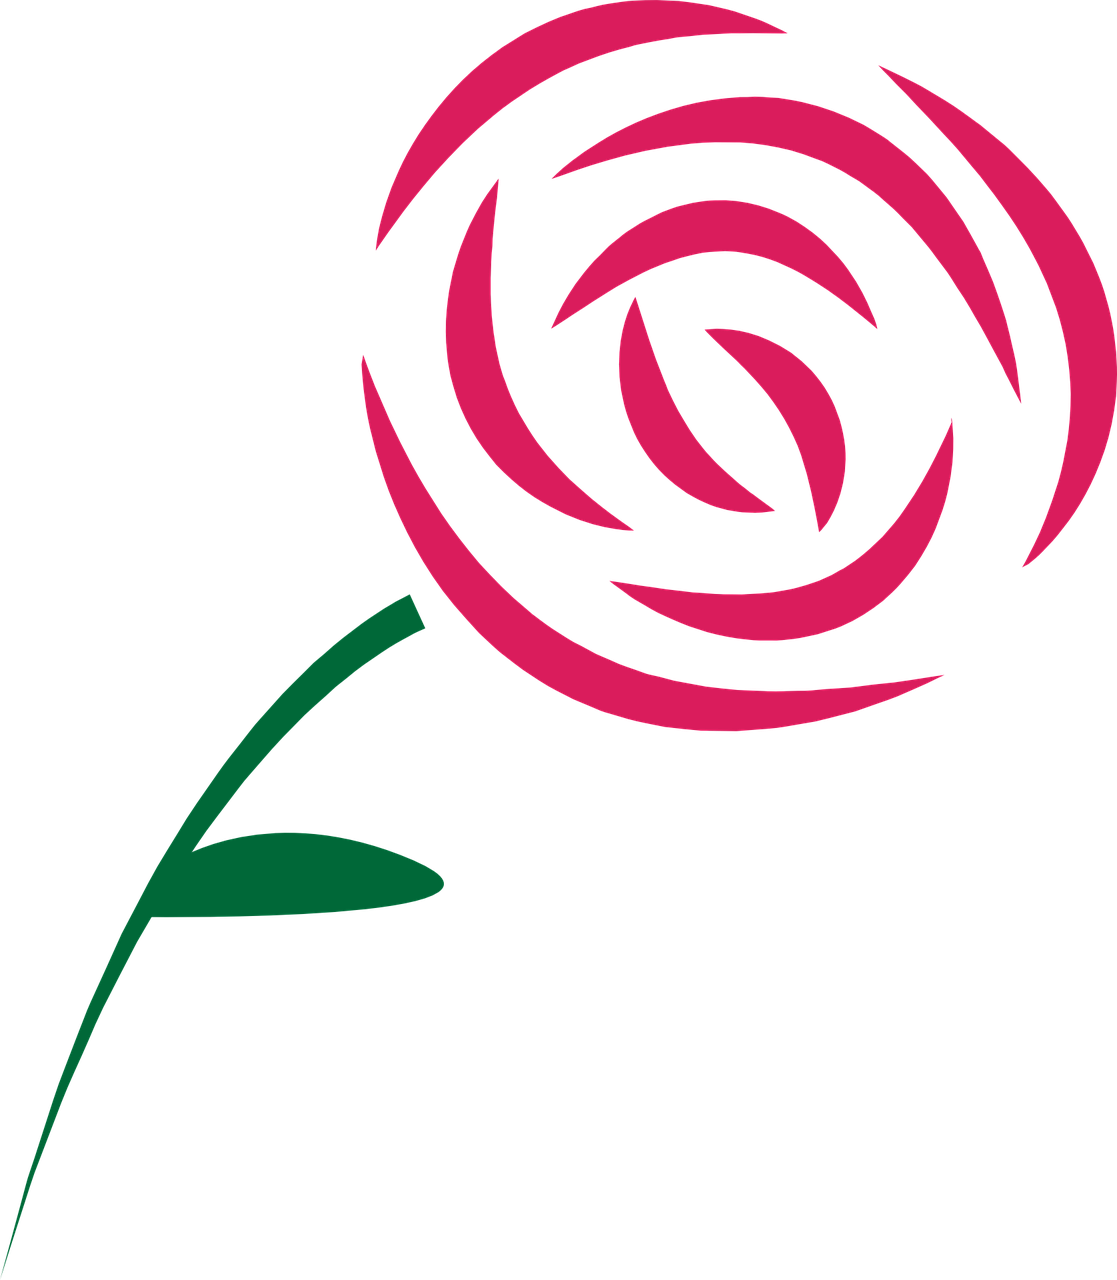 Bookmark drawing rose. How draw a simple